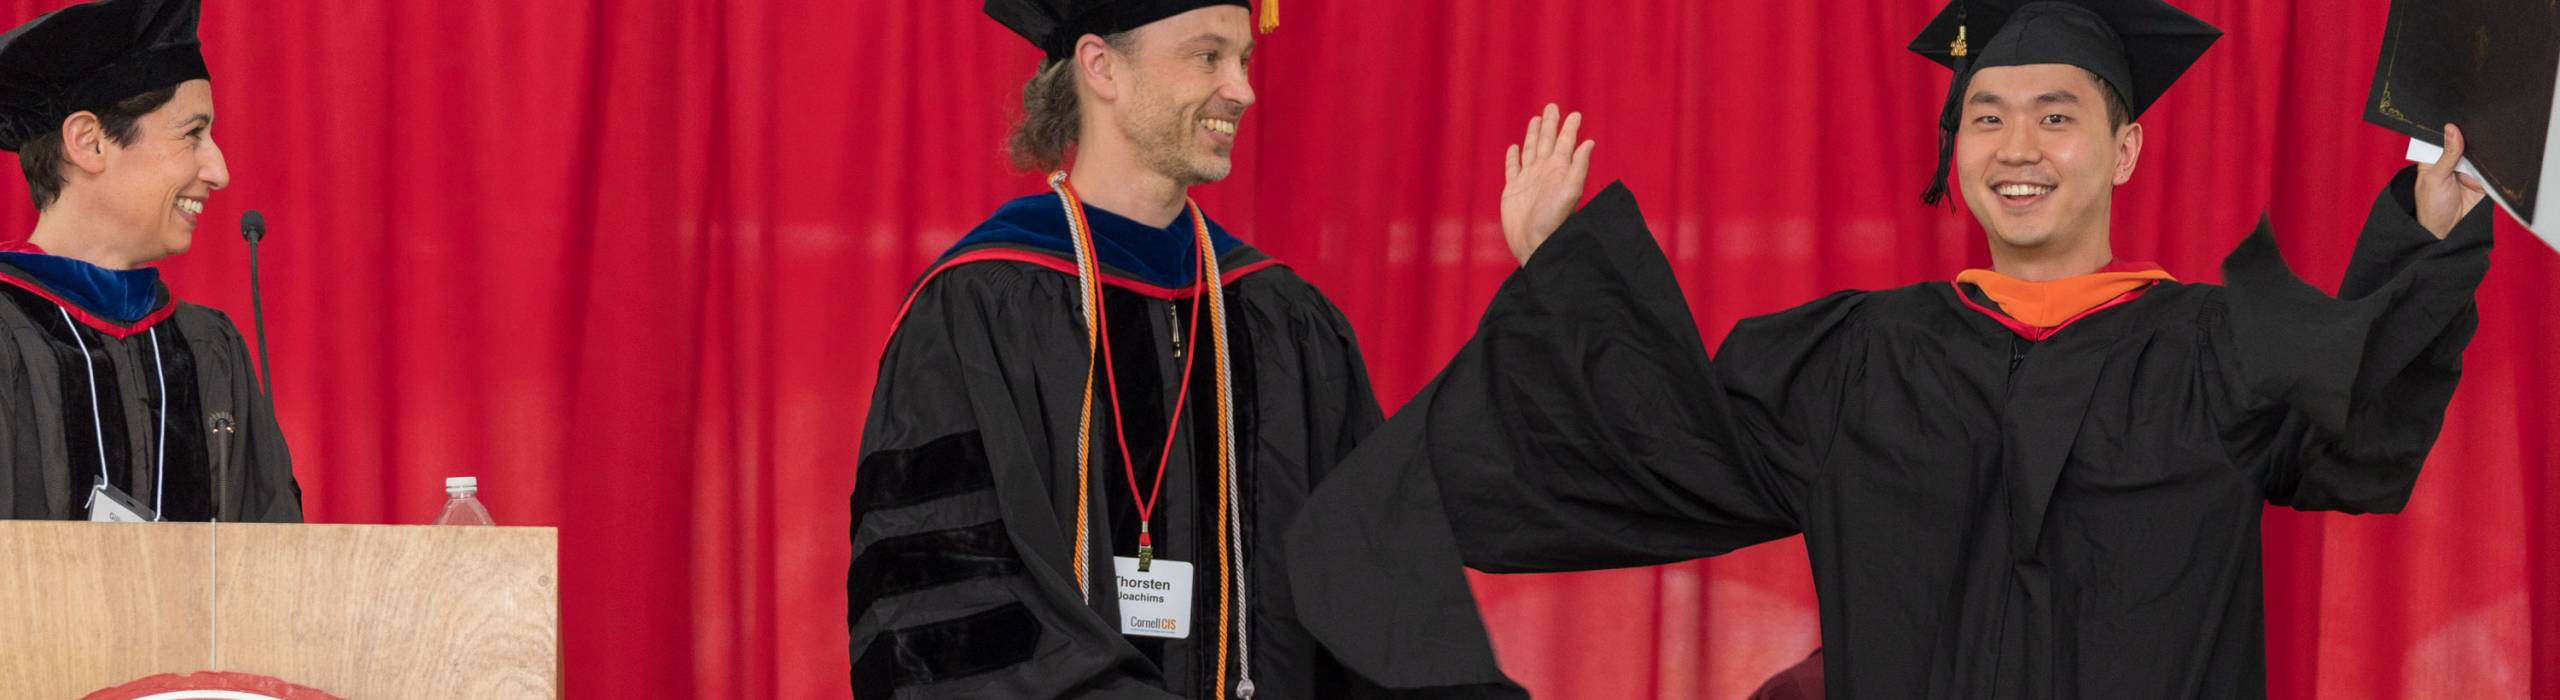 An MPS graduate receives his diploma during Info Sci's 2018 Commencement ceremonies.